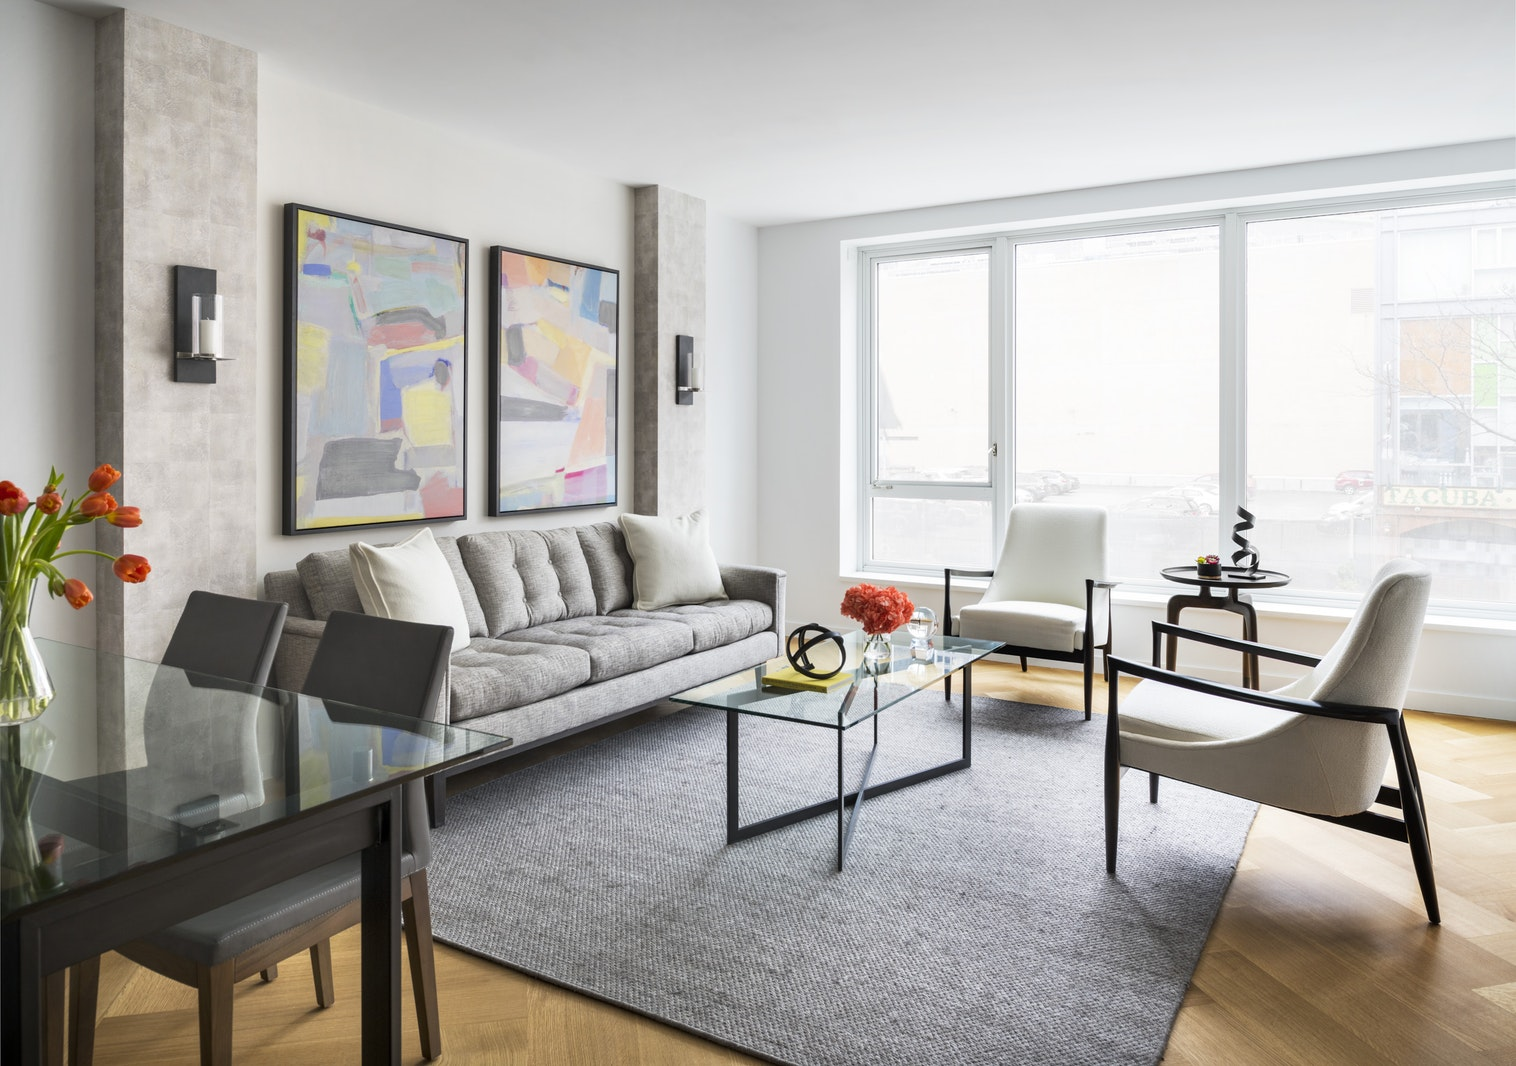 805 Ninth Avenue 5, Midtown West, NYC, $2,395,000, Web #: 19495423